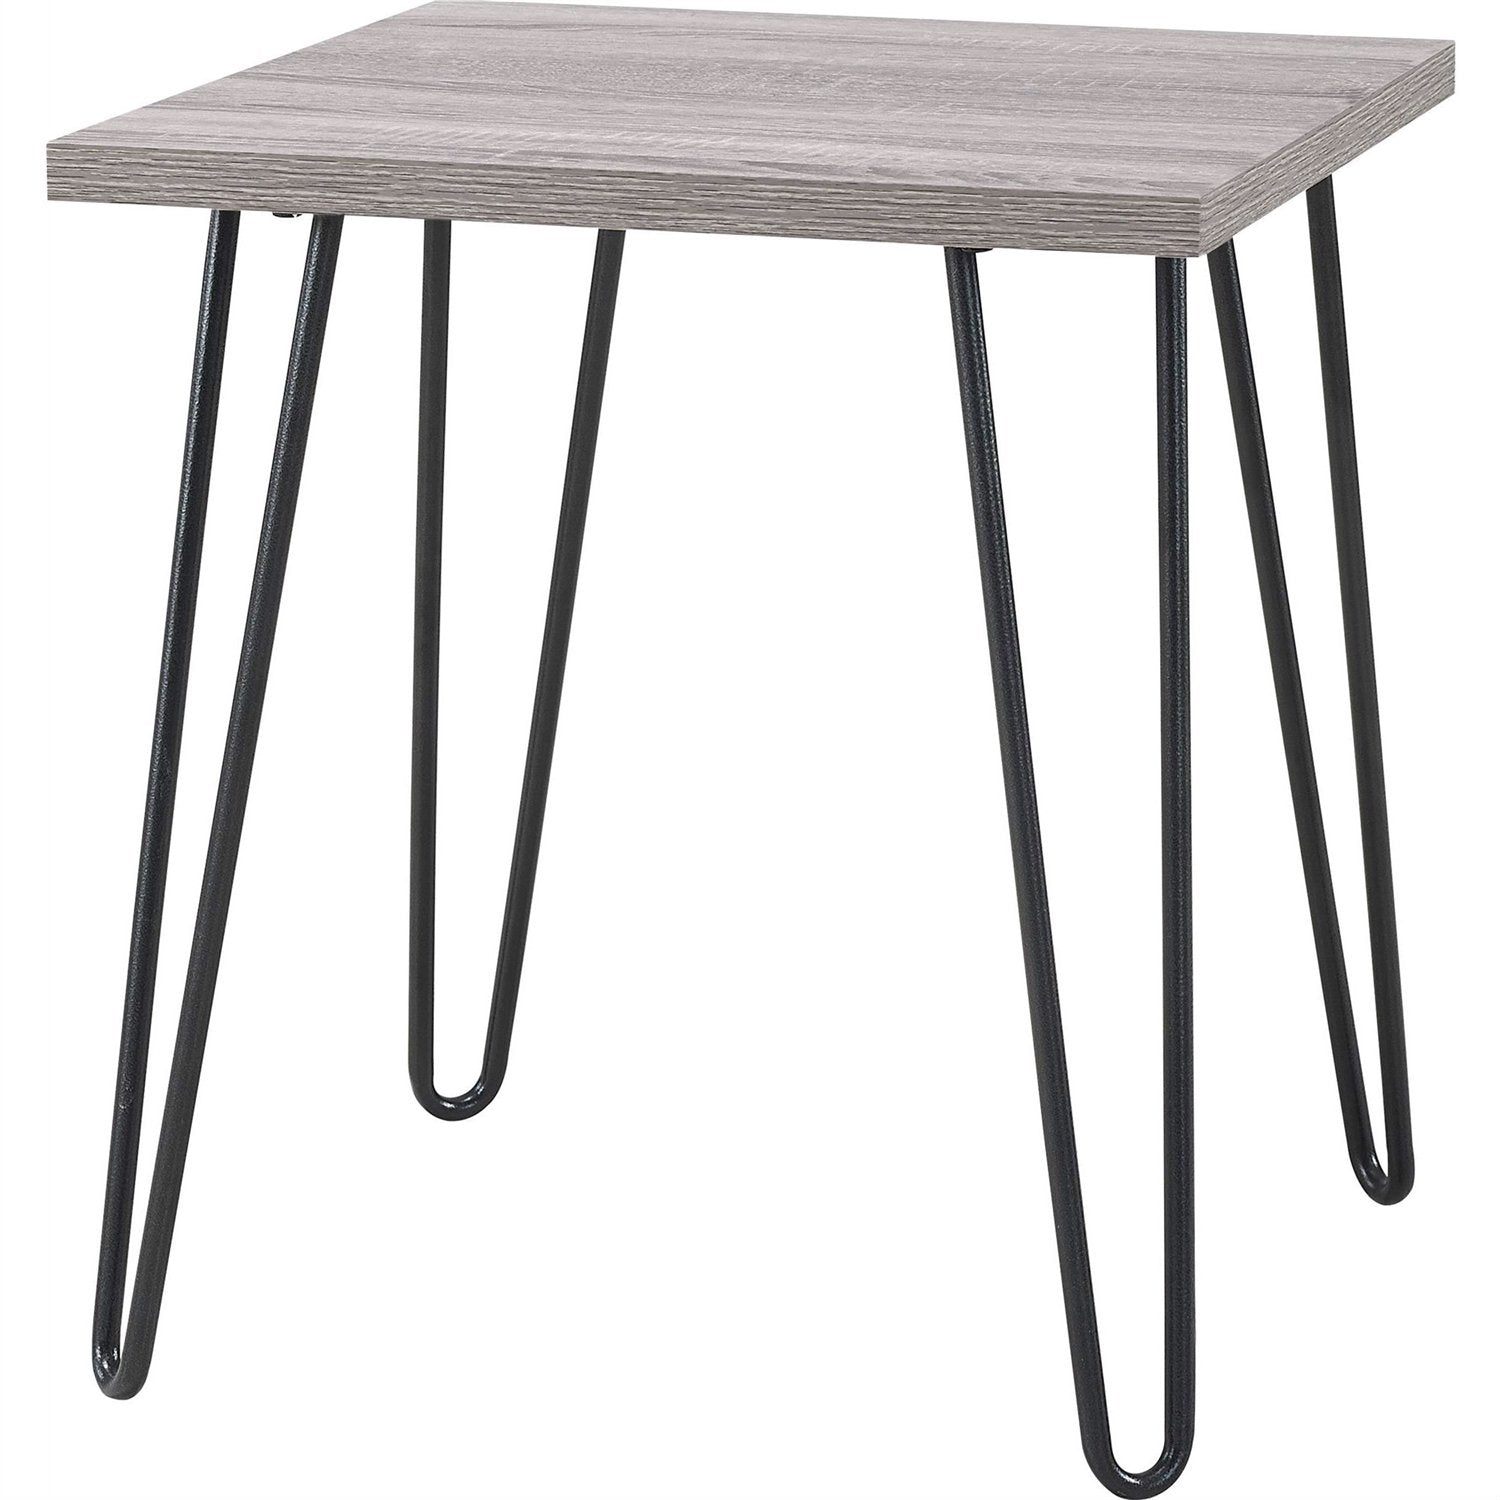 Modern Classic Vintage Style End Table with Wood Top and Metal Legs